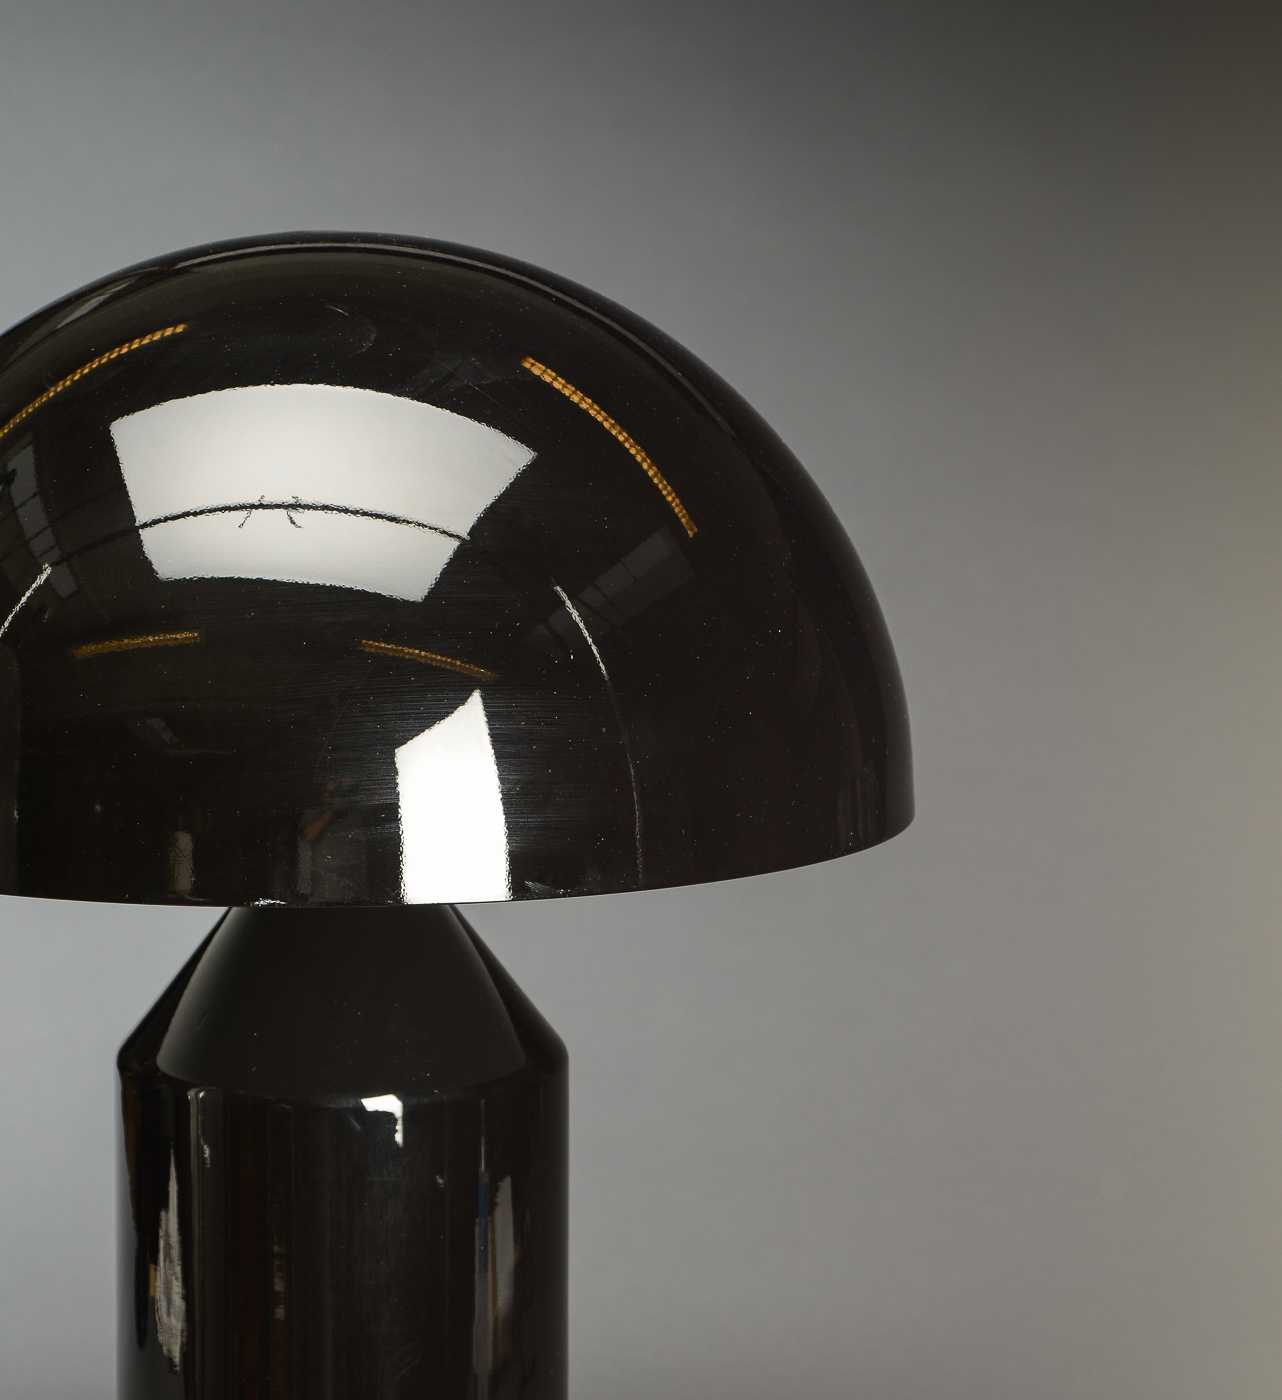 Vico Magistretti for Oluce. Tablelampe, model Atollo 233